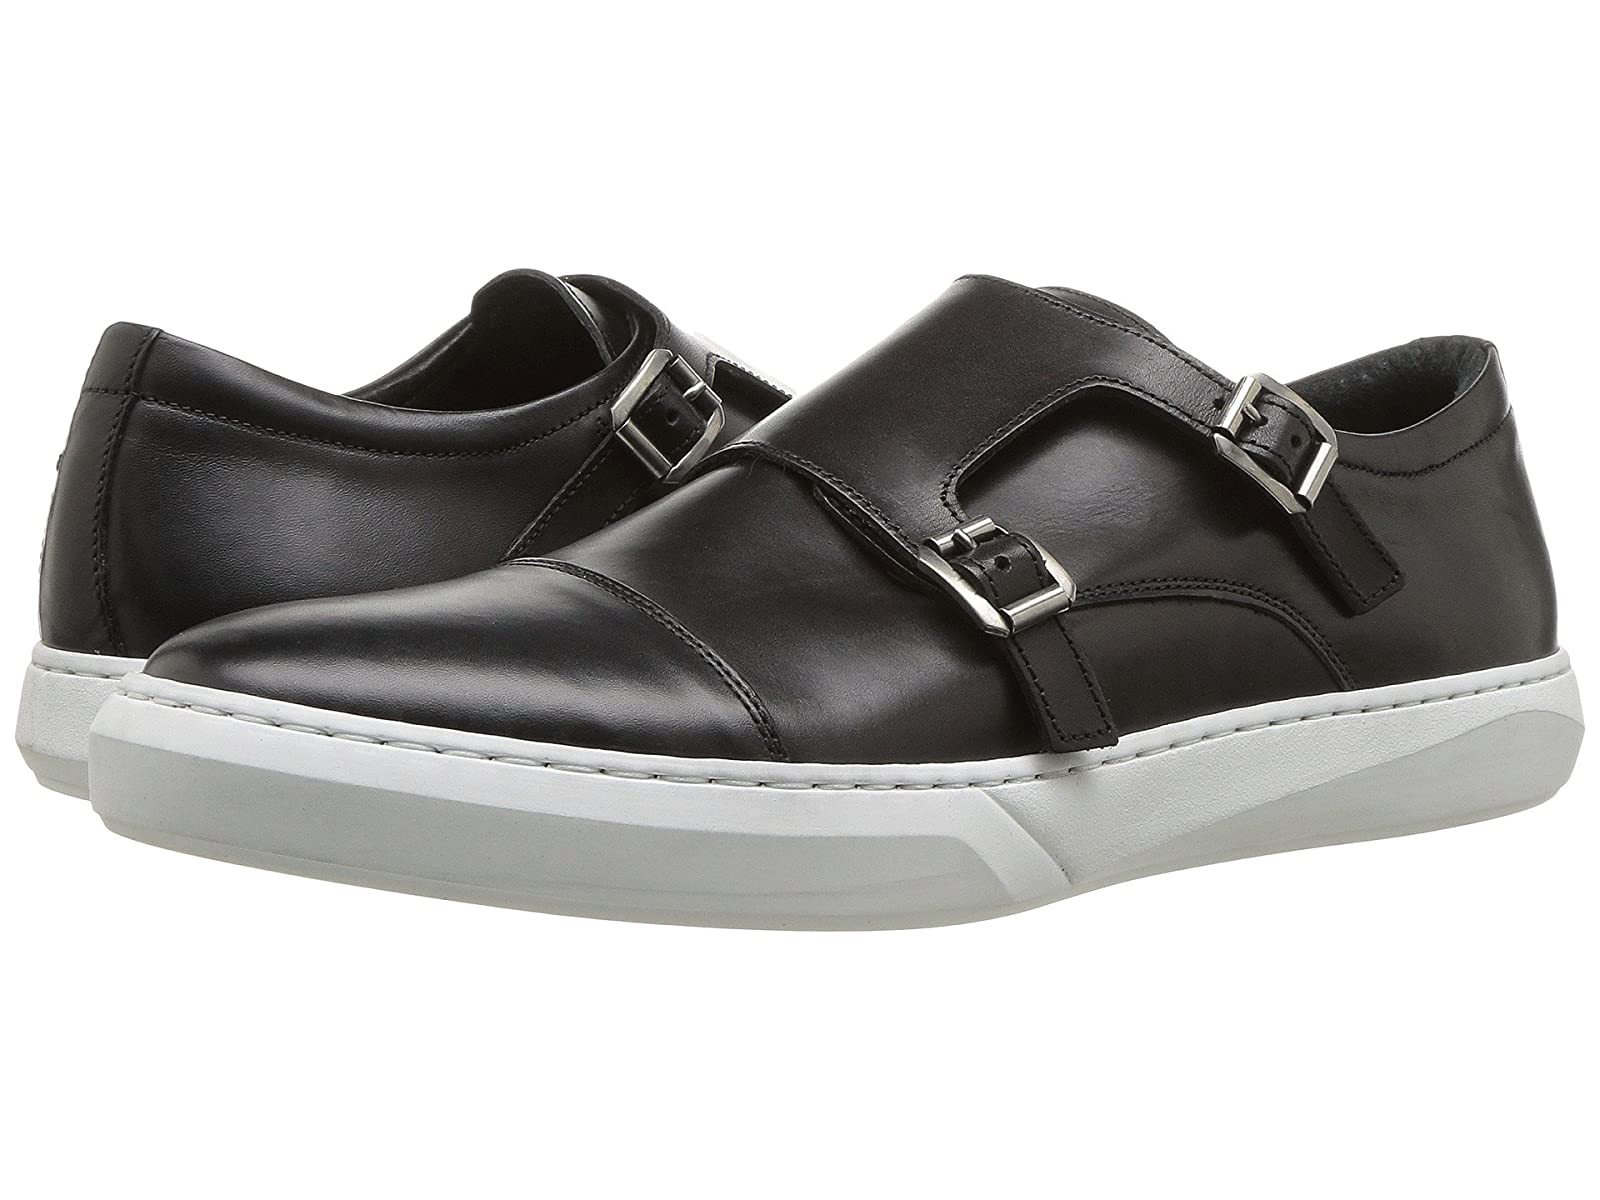 Kenneth Cole New York Whyle SneakerAtmospheric grades have affordable shoes